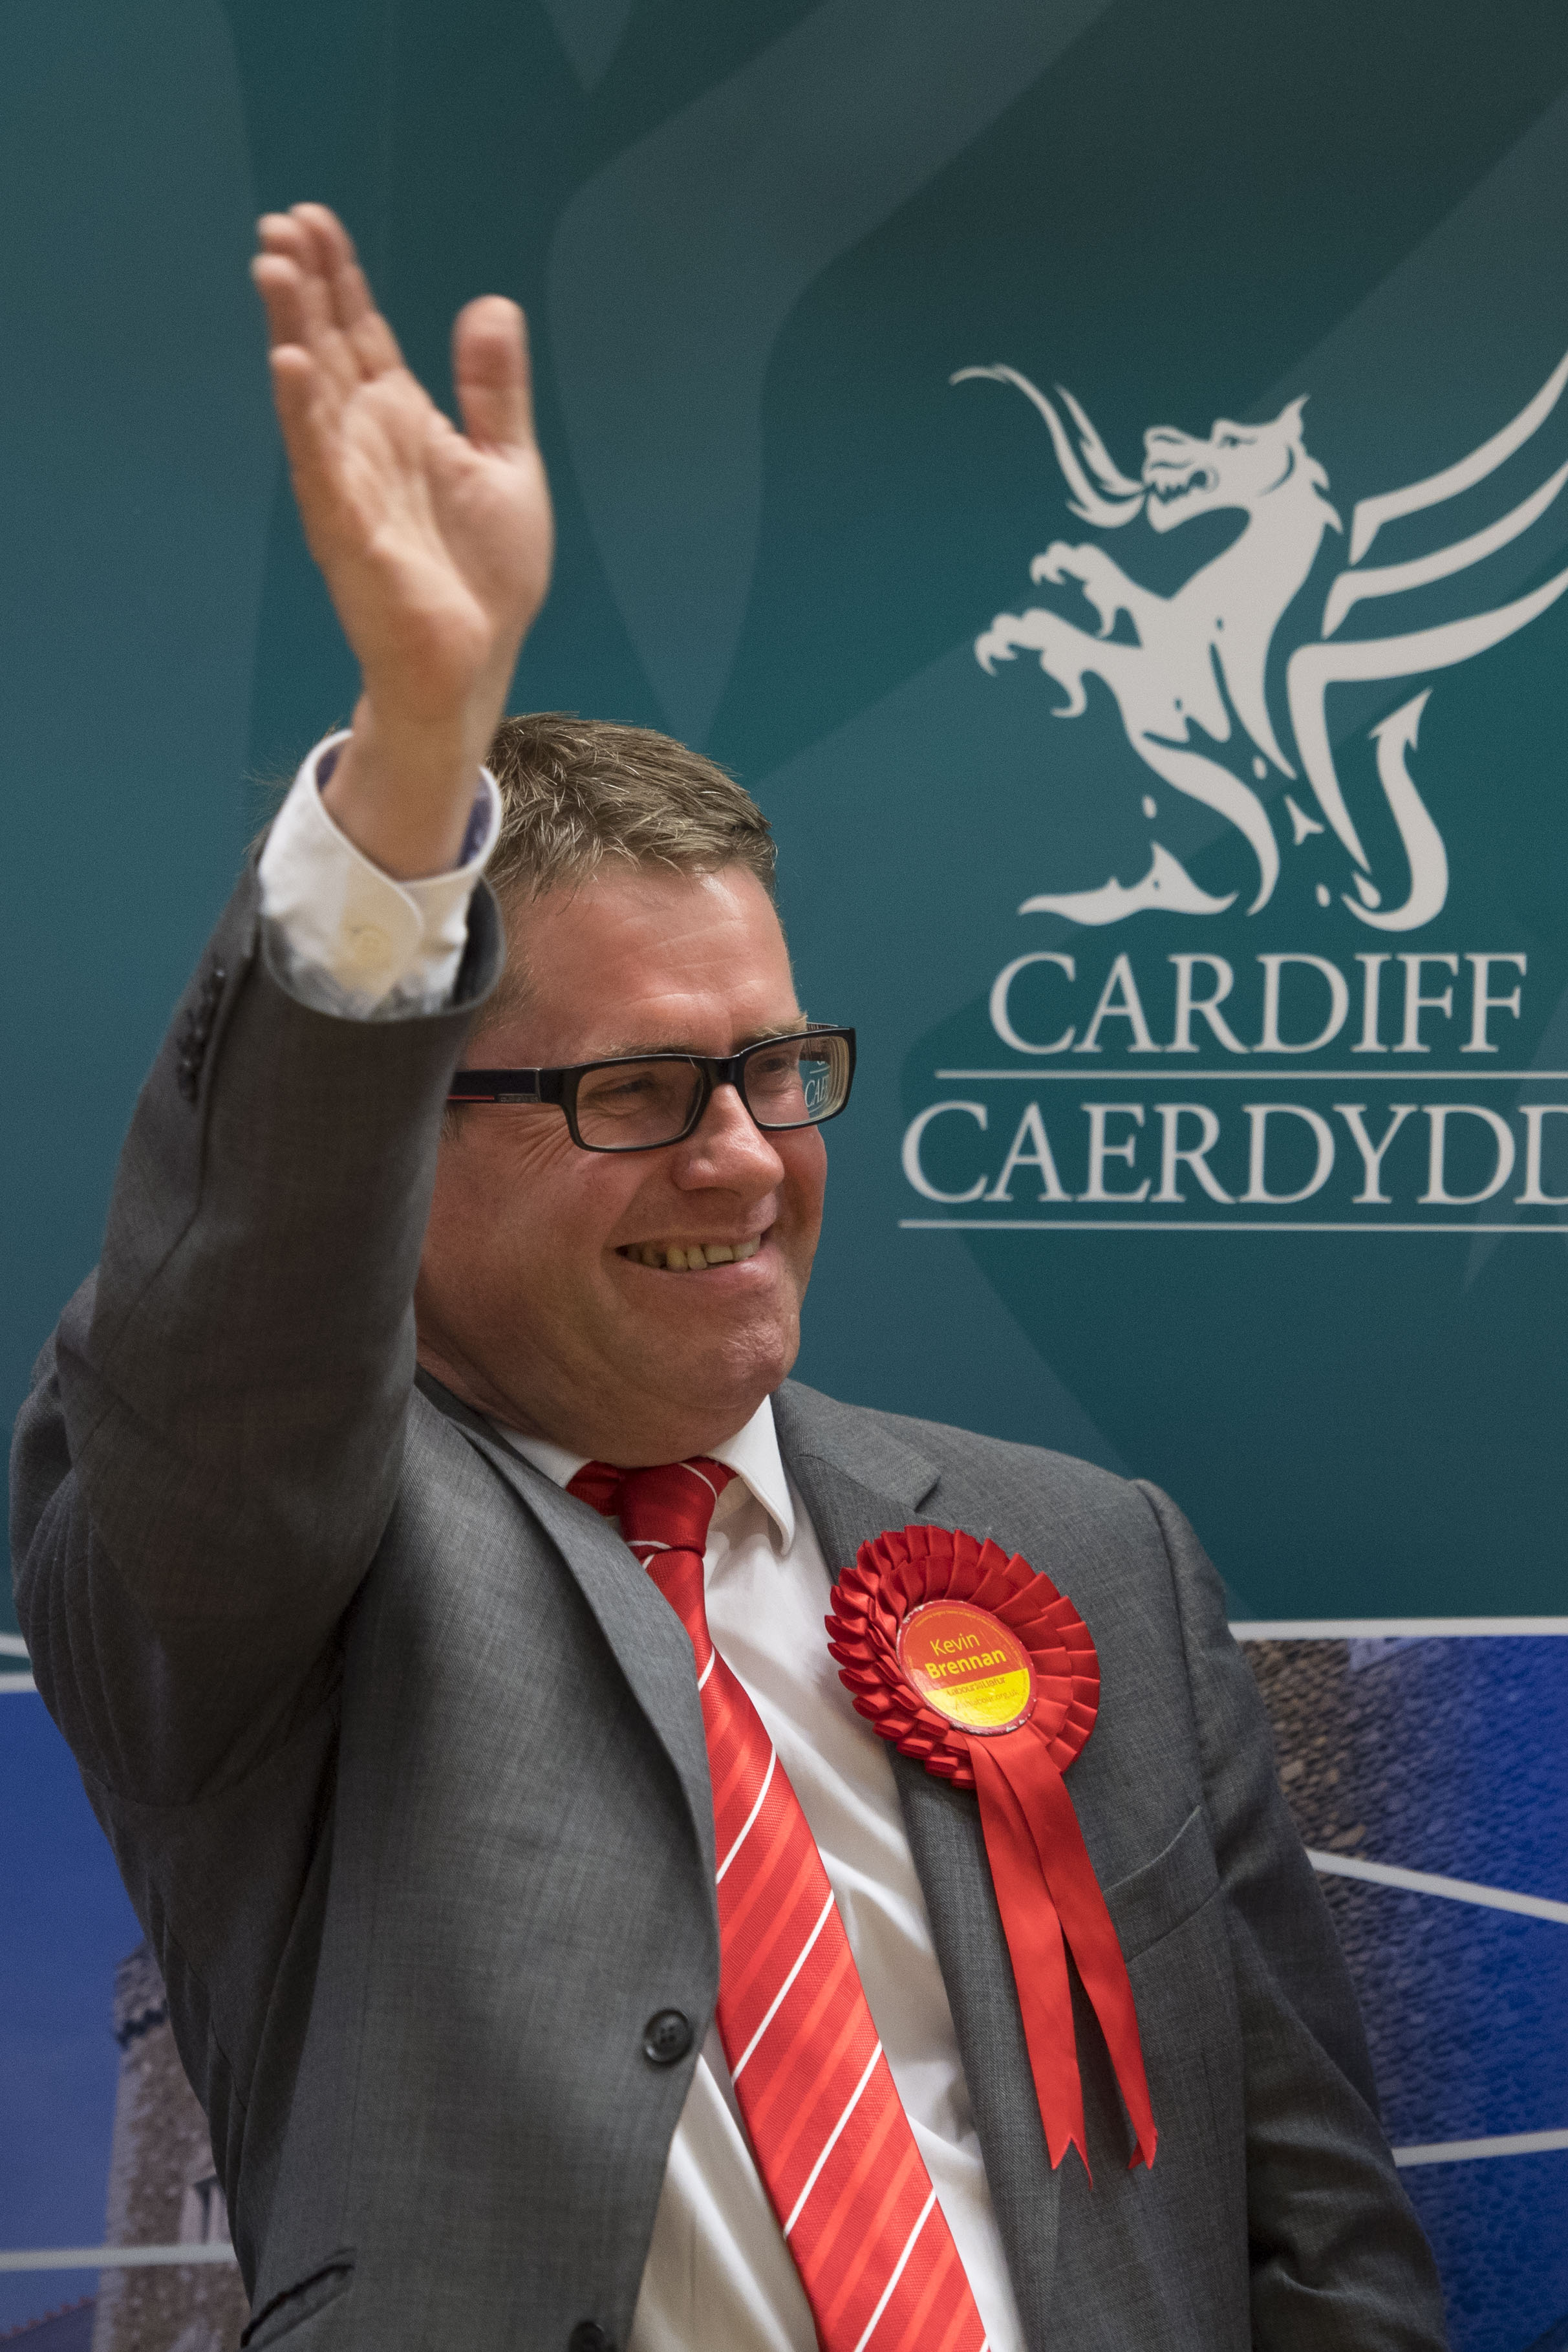 CARDIFF, UNITED KINGDOM - JUNE 09: Kevin Brennan waves to supporters after winning Cardiff West for Labour at the Sport Wales National Centre on June 9, 2017 in Cardiff, United Kingdom. After a snap election was called, the United Kingdom went to the polls yesterday following a closely fought election. The results from across the country are being counted and an overall result is expected in the early hours. (Photo by Matthew Horwood/Getty Images)